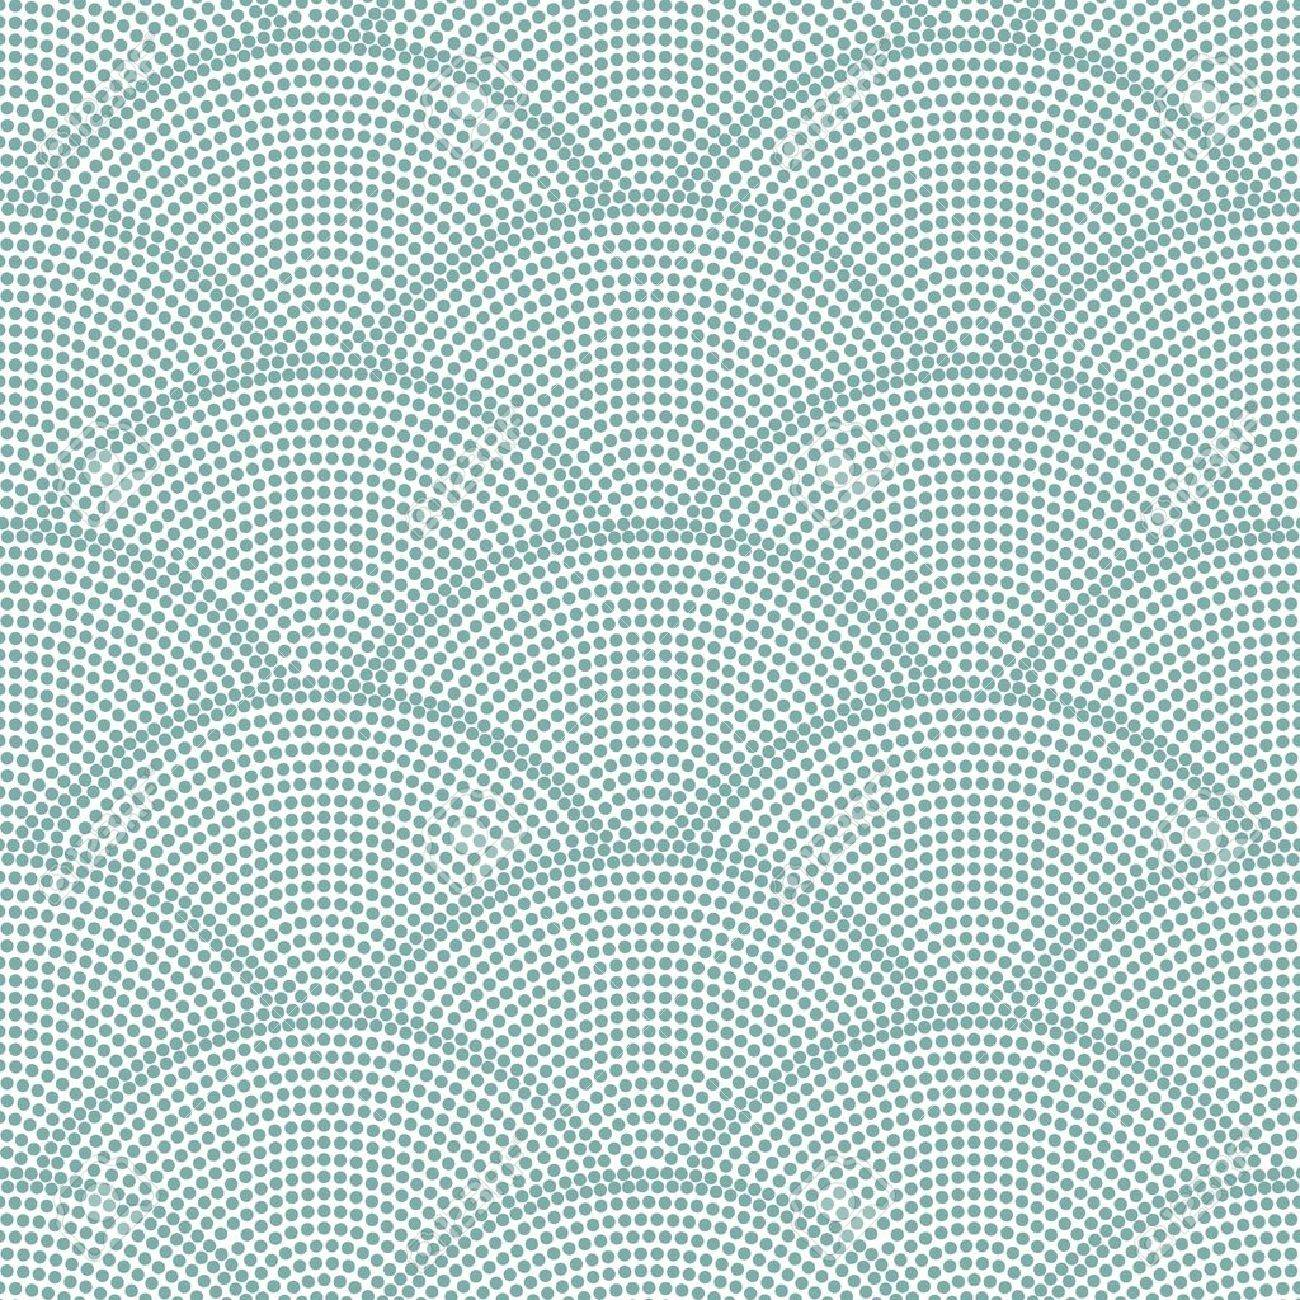 Ocean Wave Pattern Magnificent Design